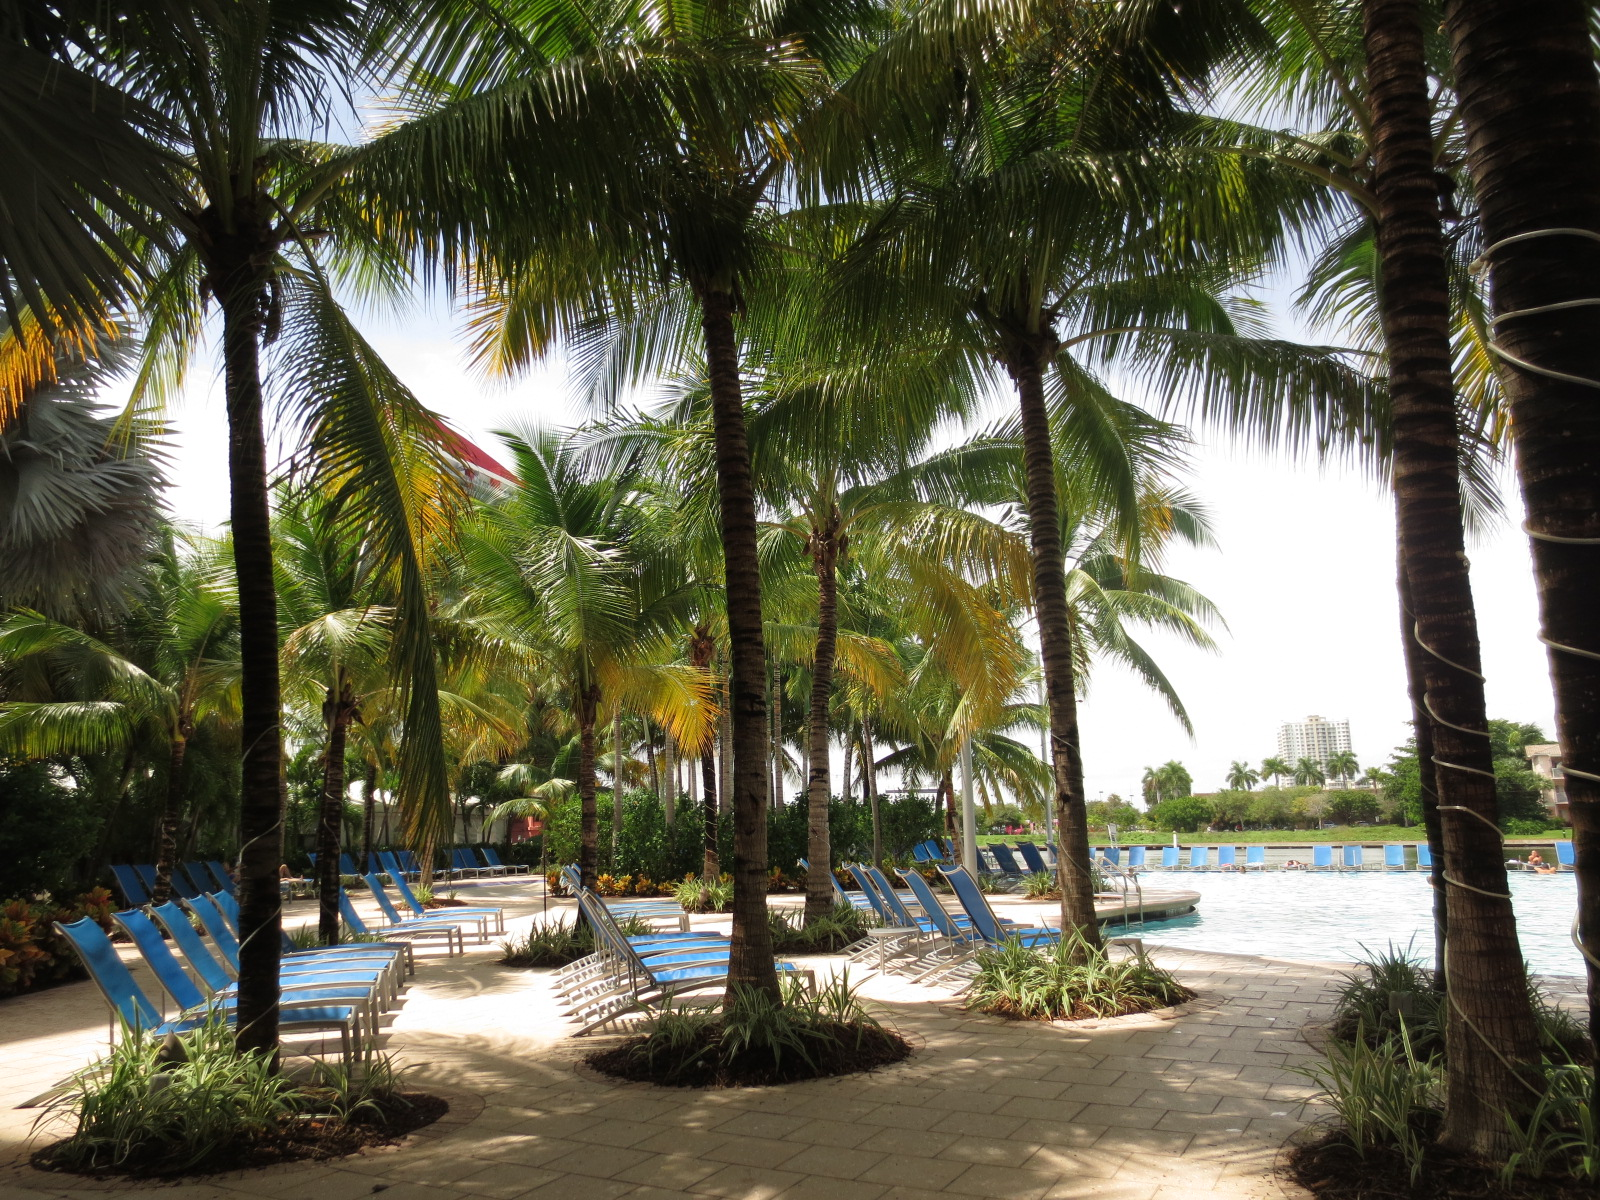 Hotell-med-stor-pool-Fort-Lauderdale-FLorida-TravelGrip